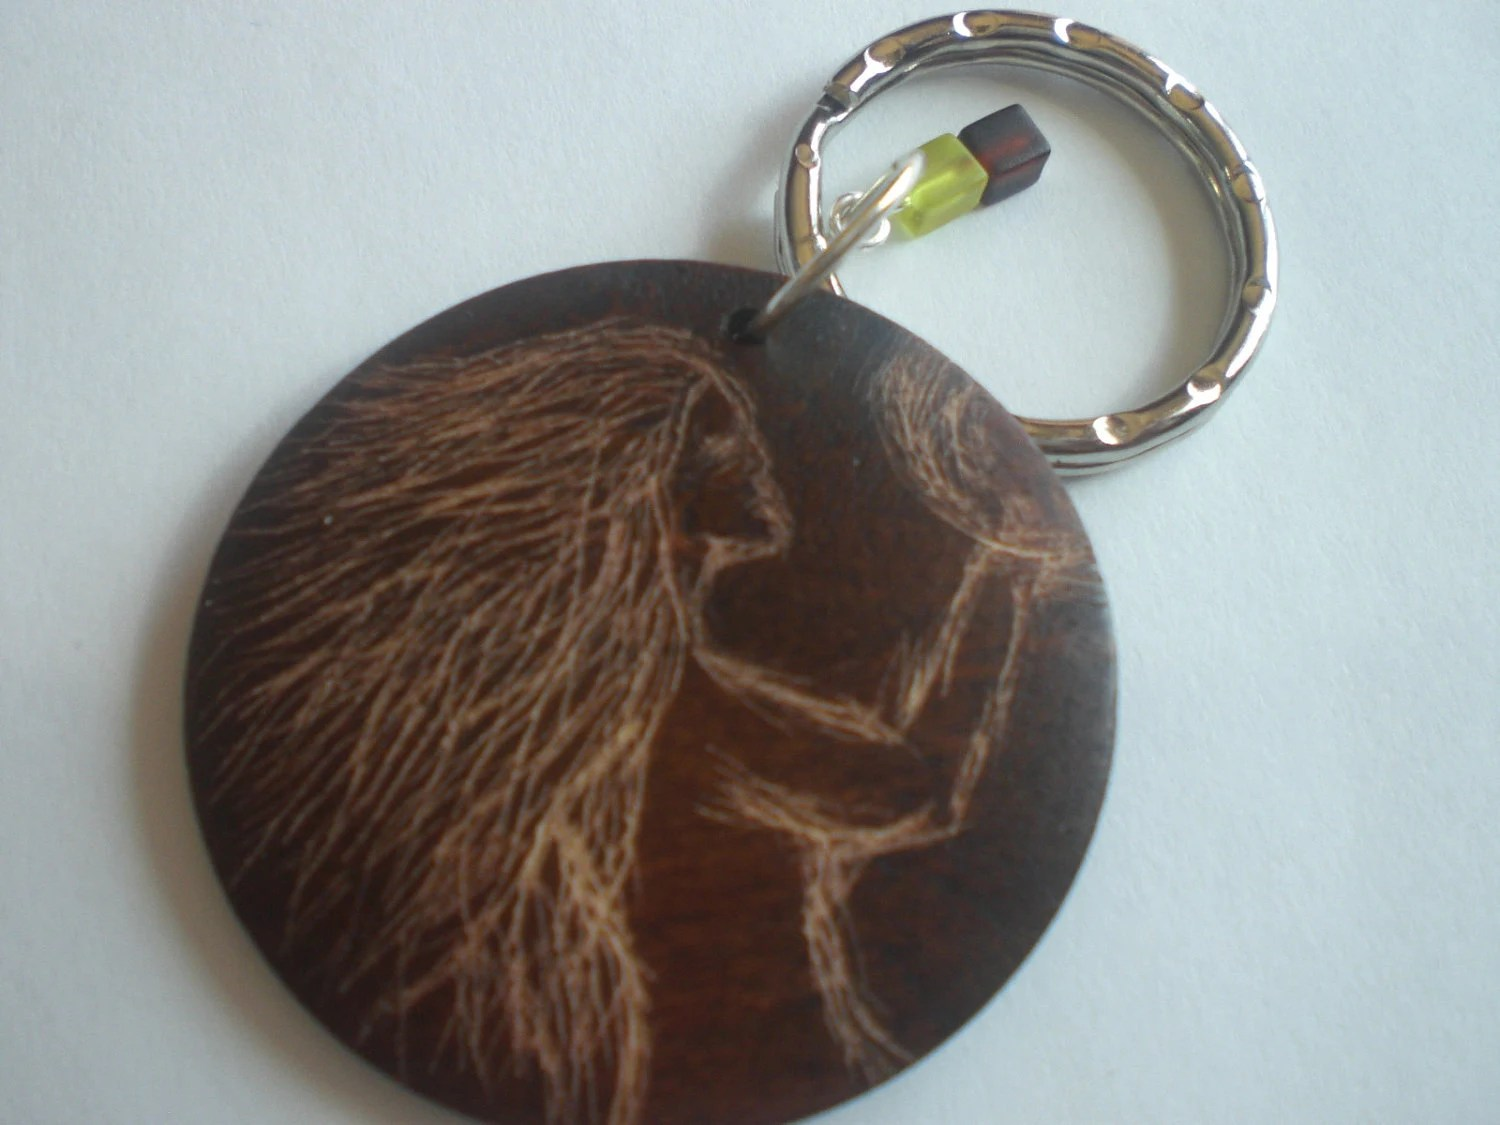 Ooak Carved Wood Mother Earth's Reflection Keychain with Green and Brown Glass Charms